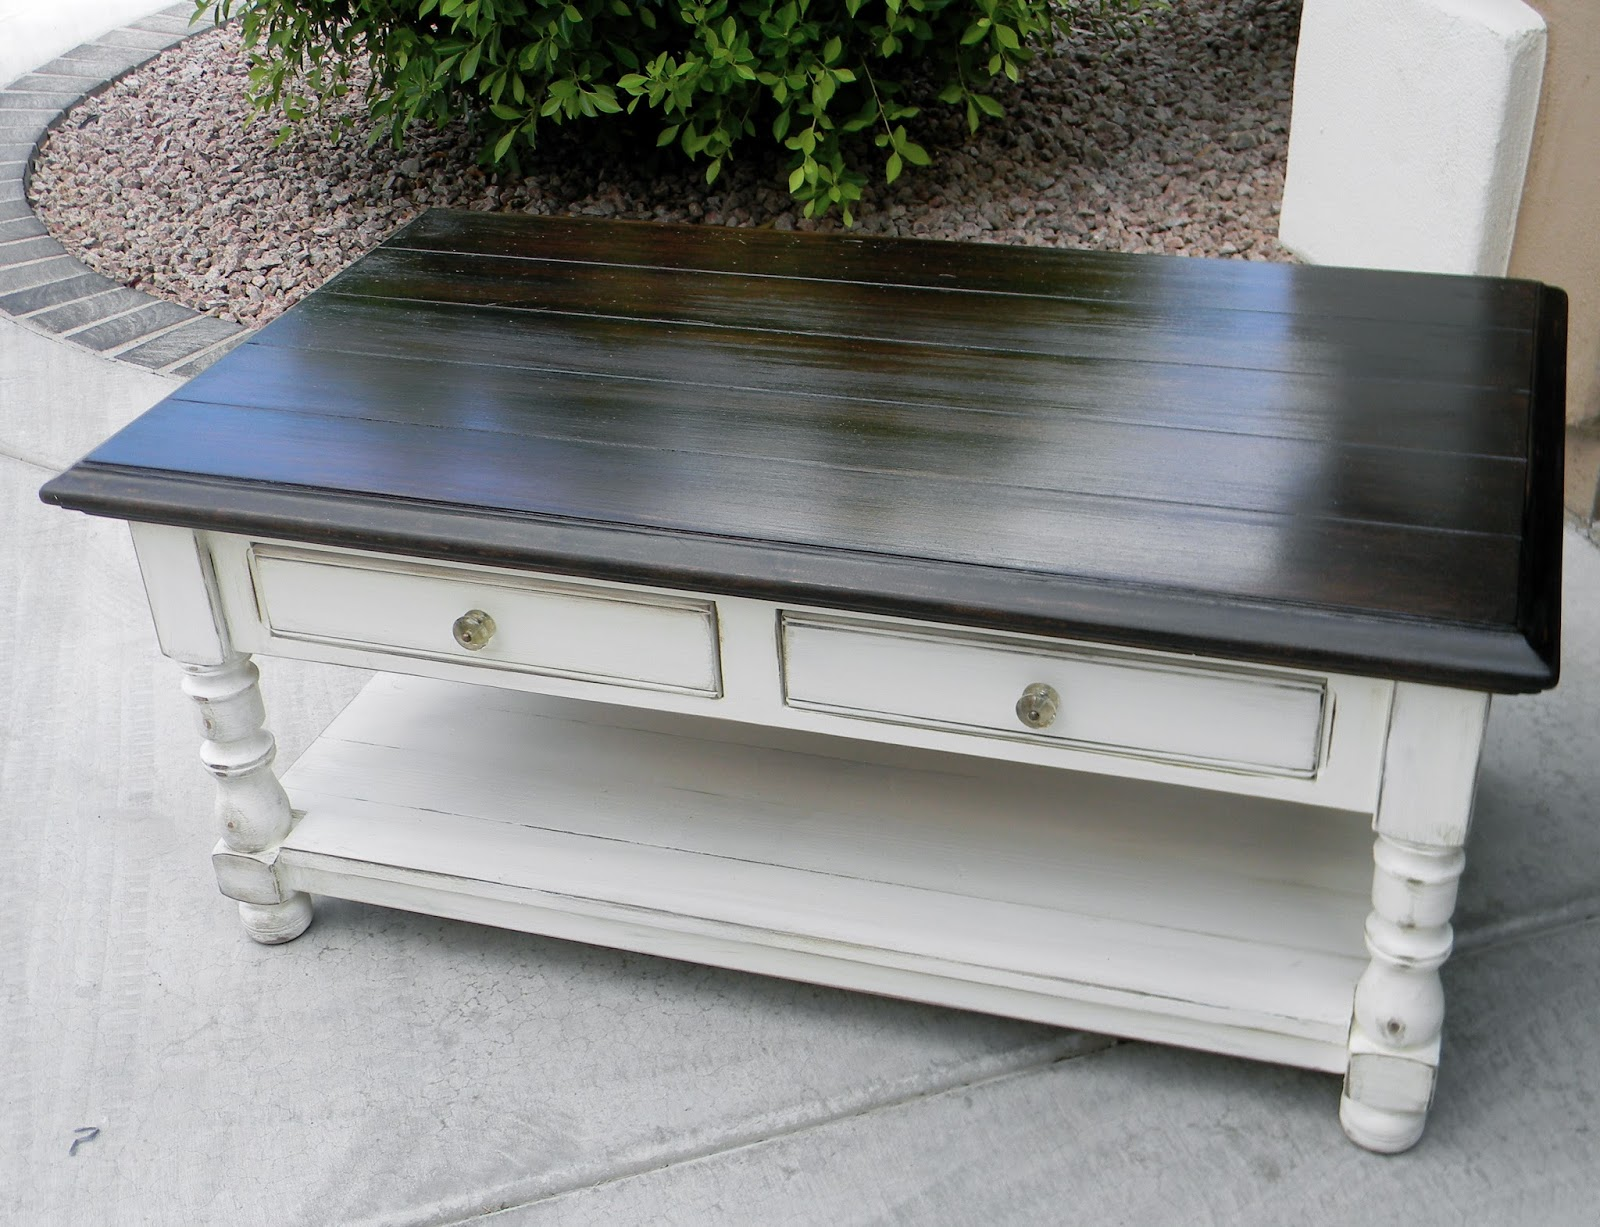 Little bit of paint refinished coffee table for Refinishing a coffee table ideas